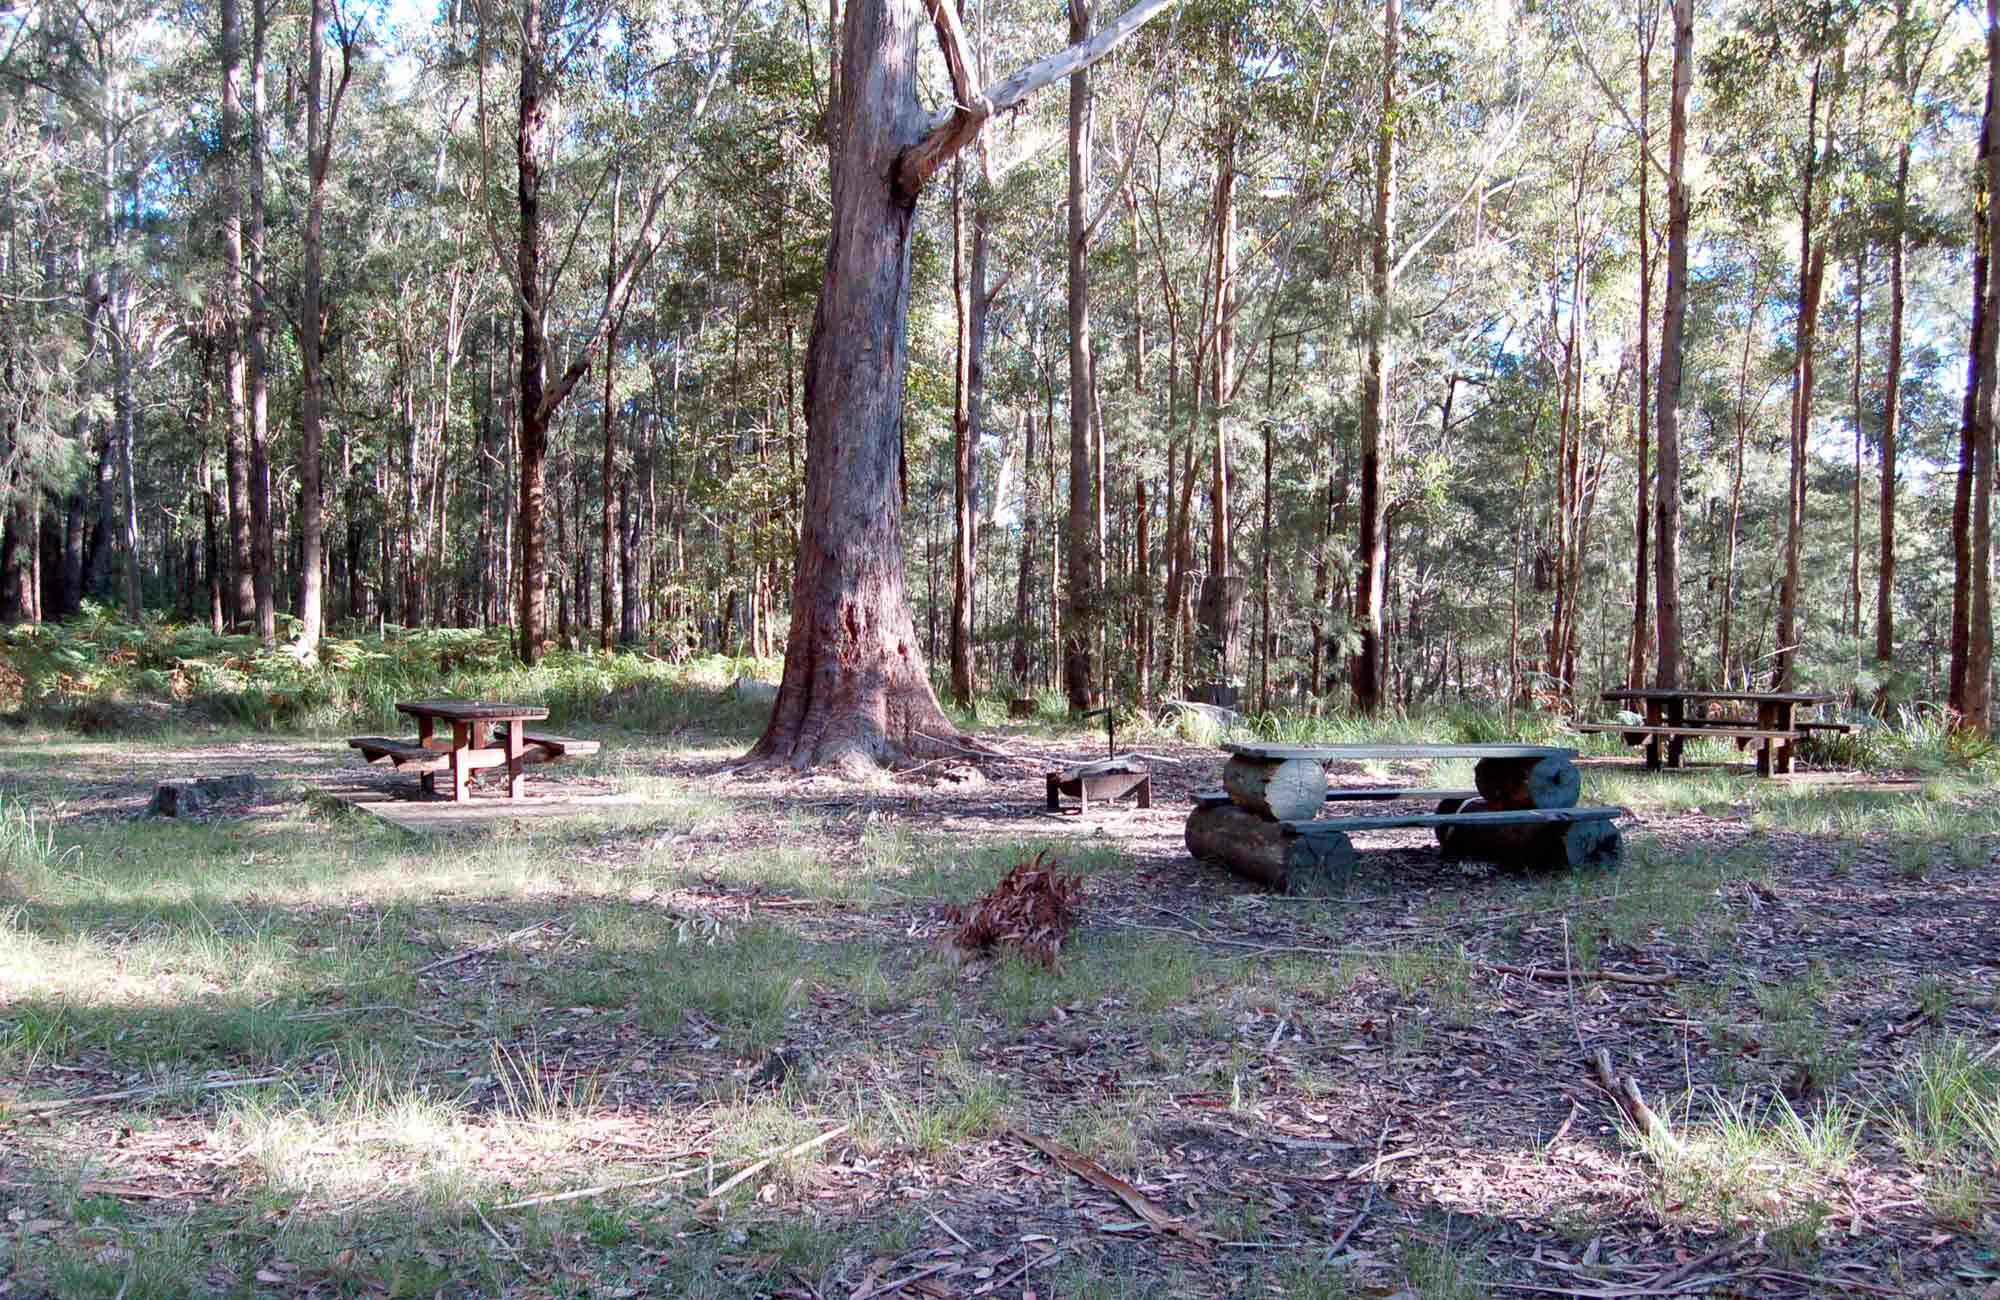 Picnic tables hero, Watagans National Park